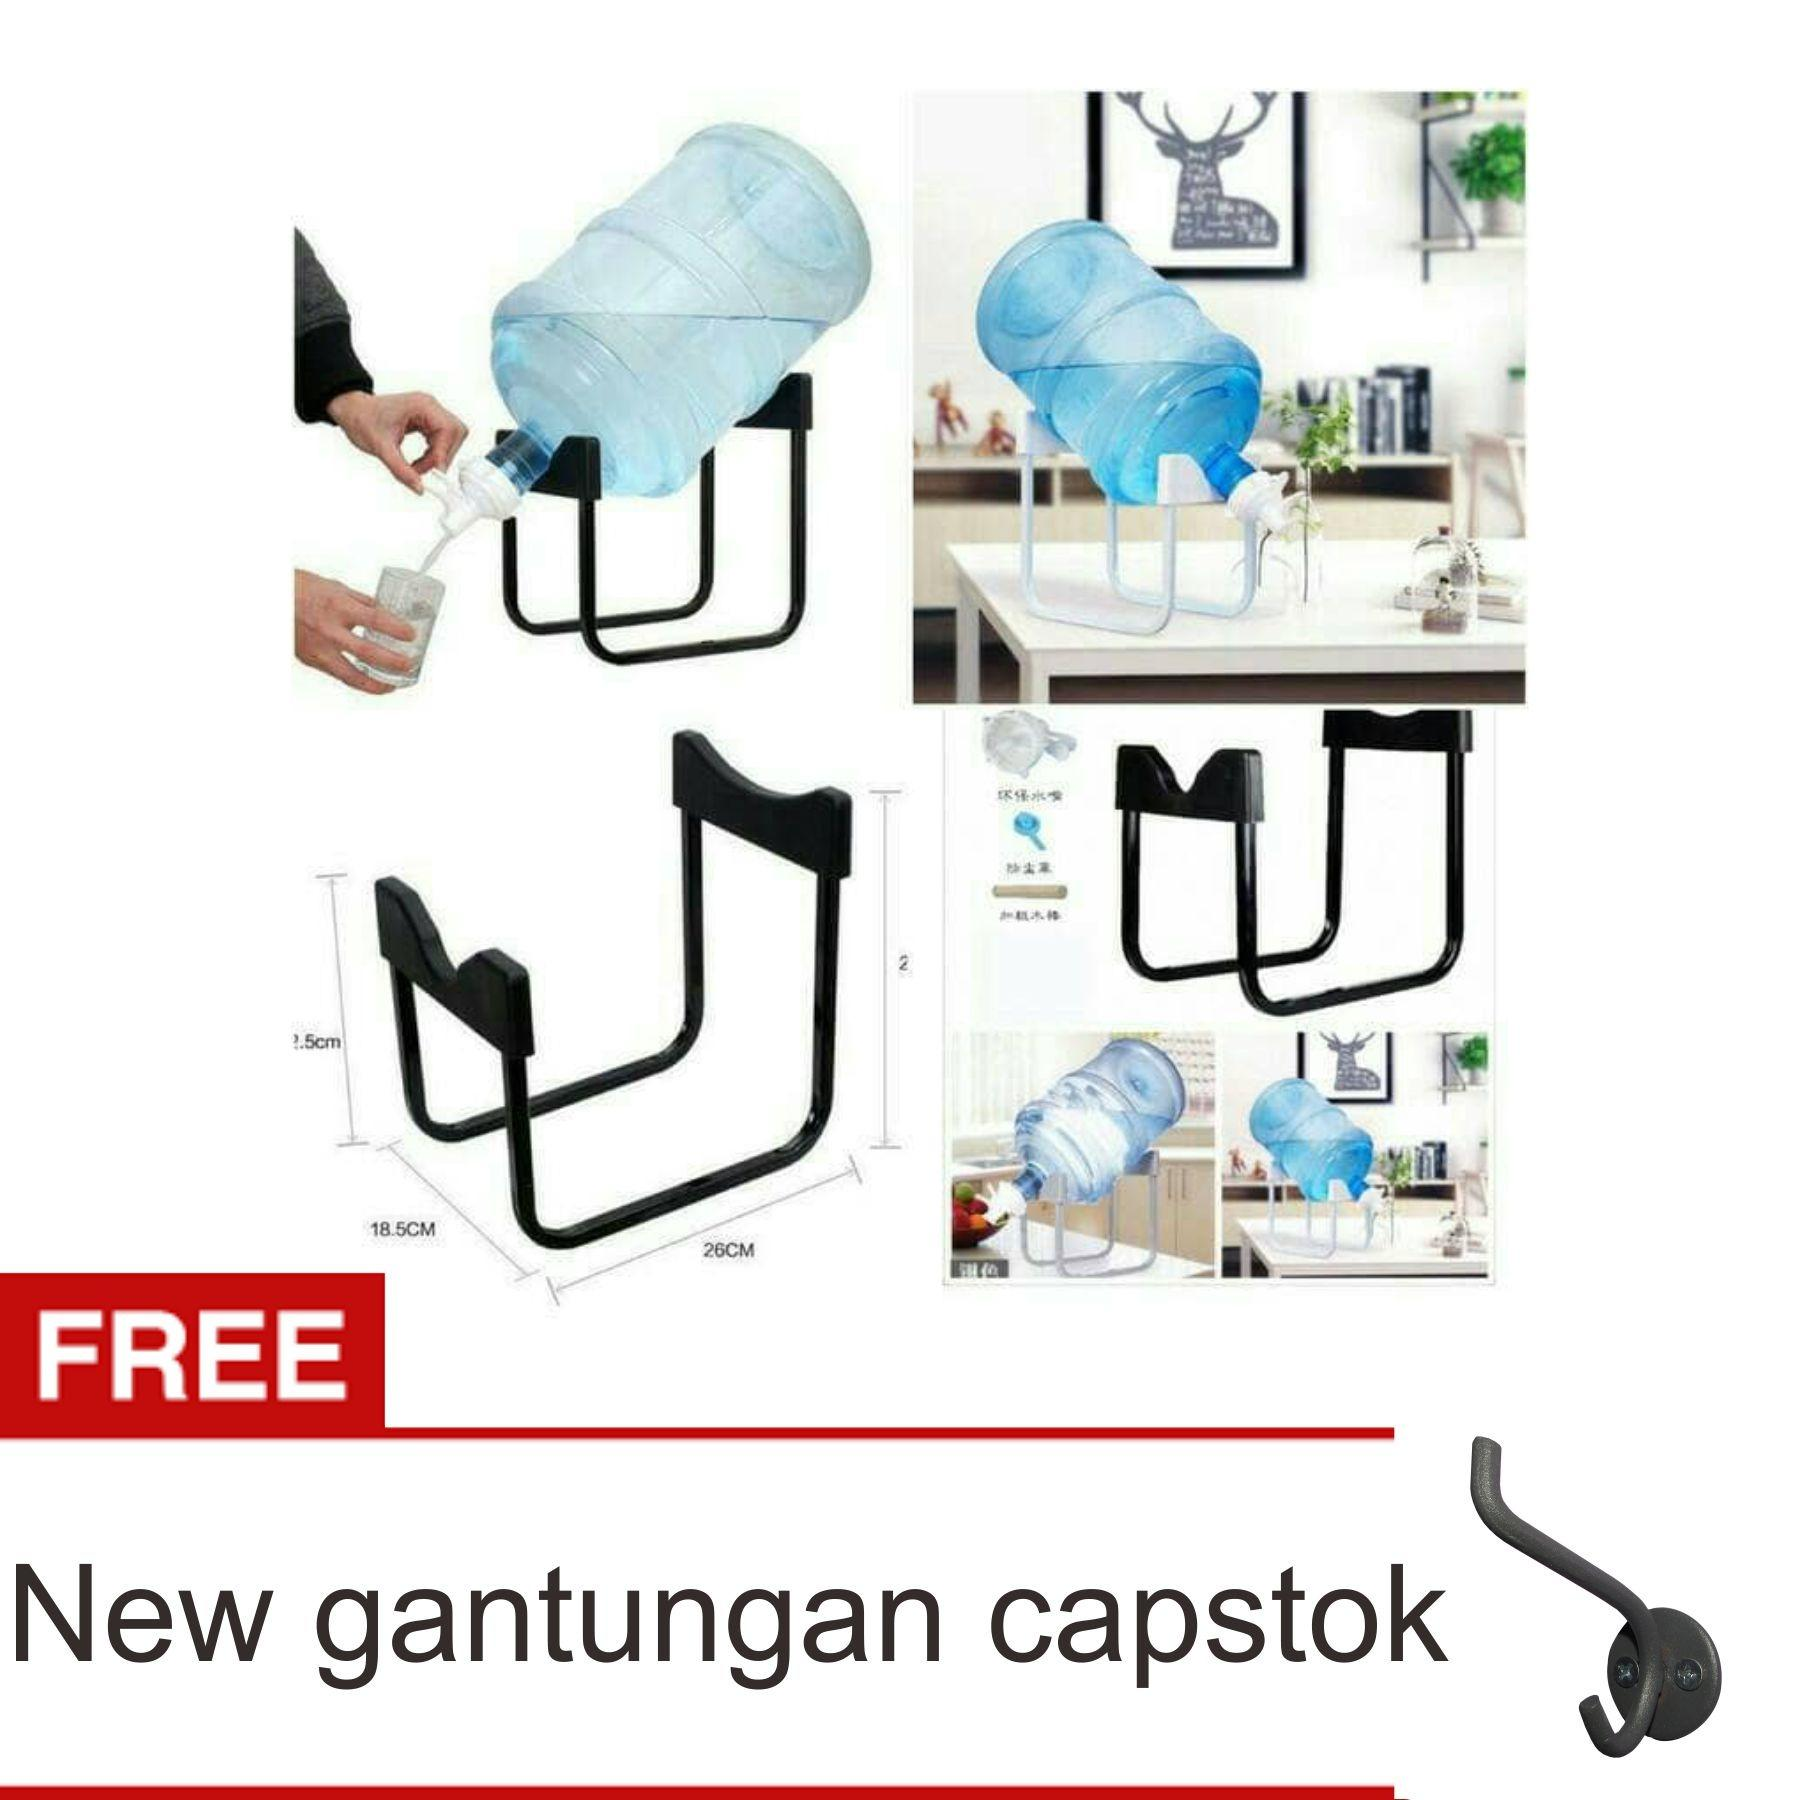 Lanjarjaya Rak Galon Tatakan Galon + Kran Air Galon / Dispenser Air Galon / Dispenser Minuman / Tatakan Aqua / Rak Besi Warna Random + New Gantungan Capstok